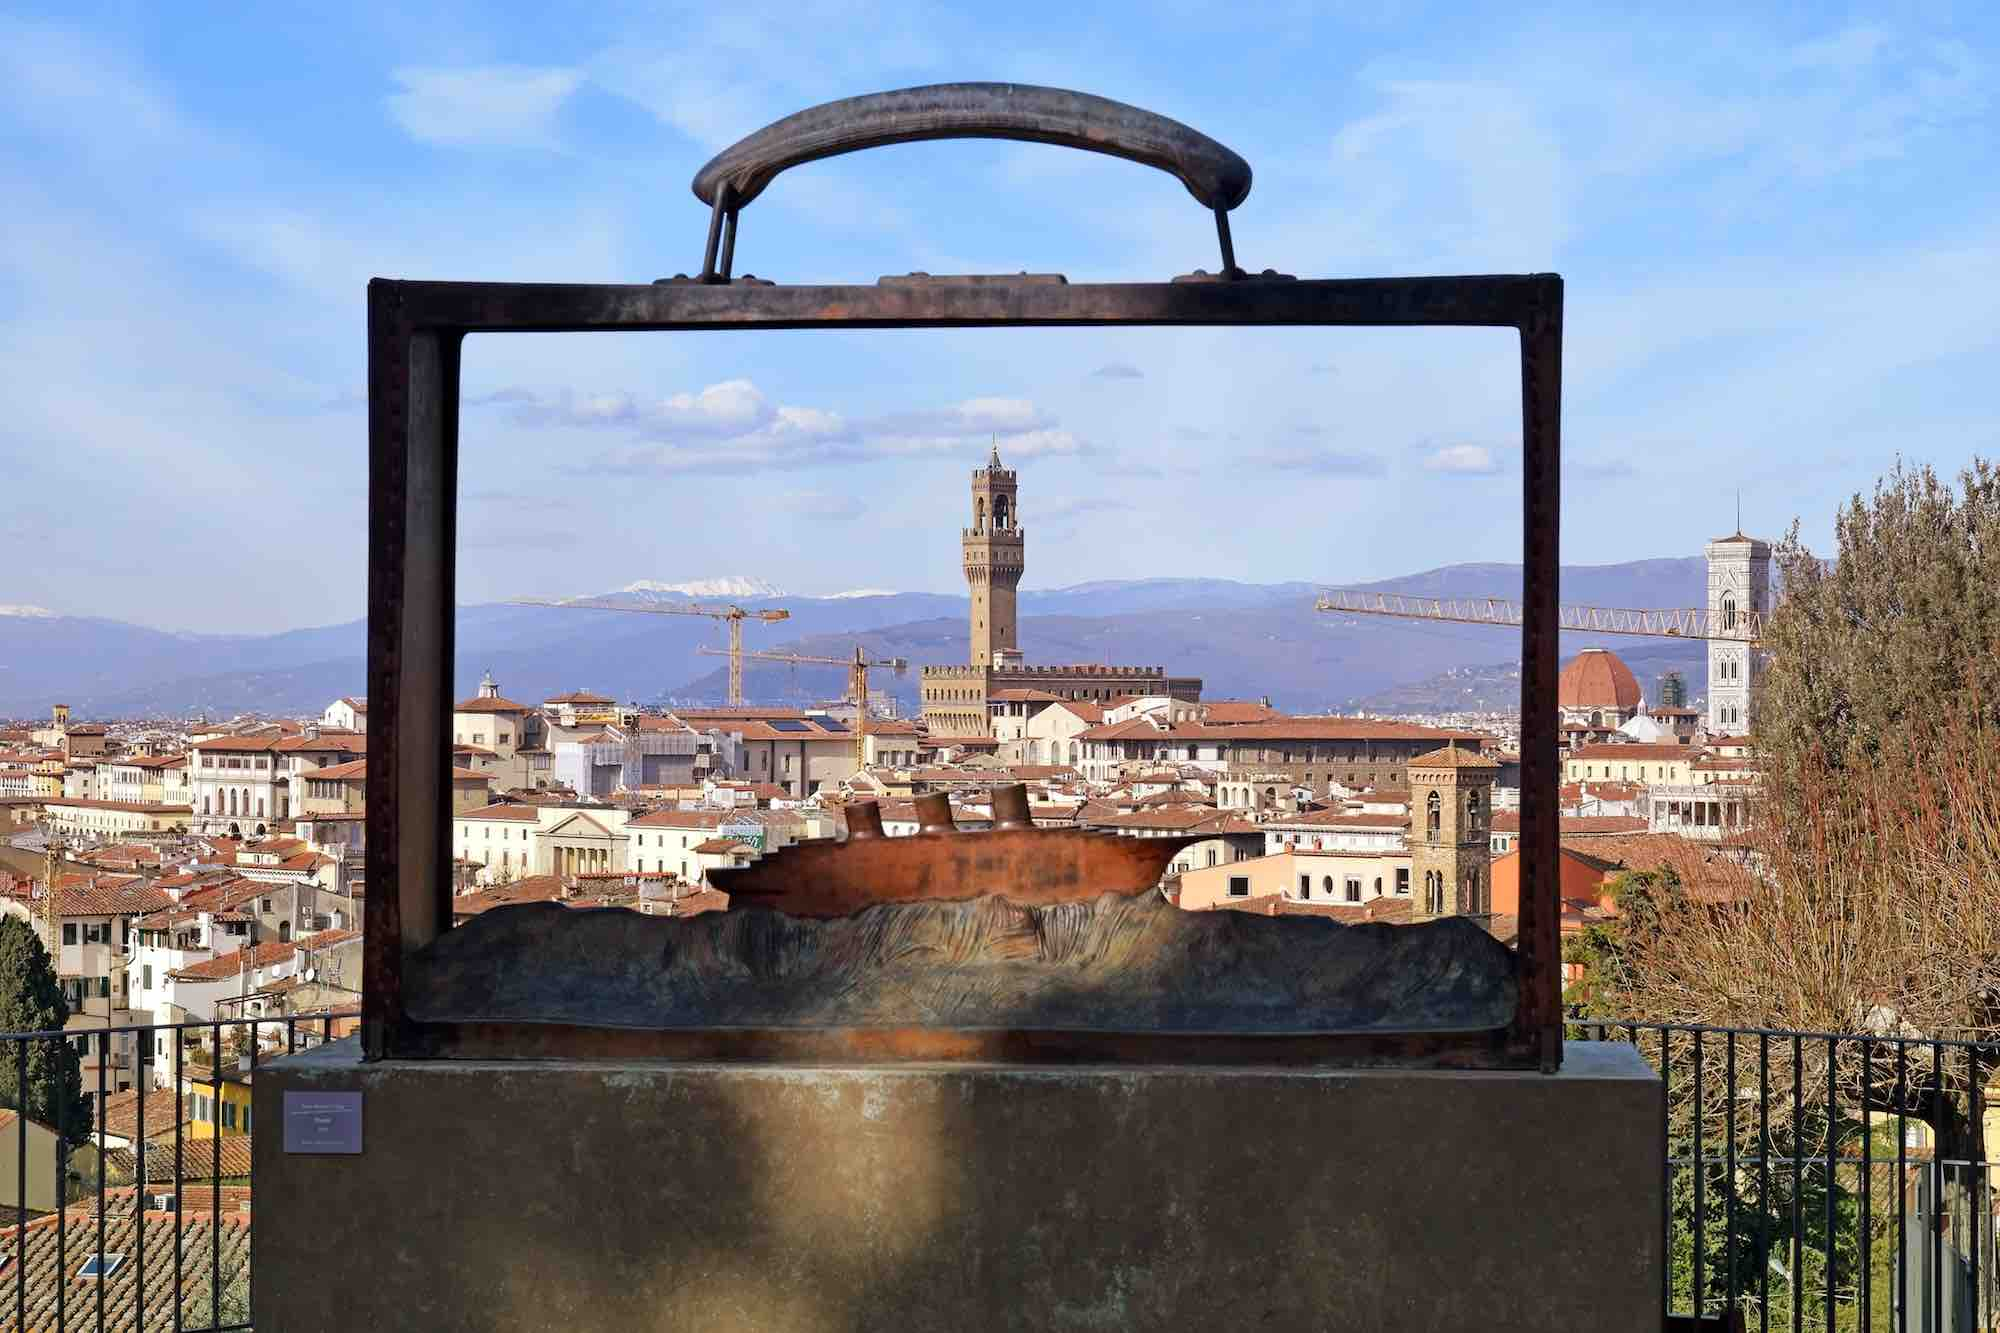 Jean-Michel Folon, trait d'union between art and love for Florence ...